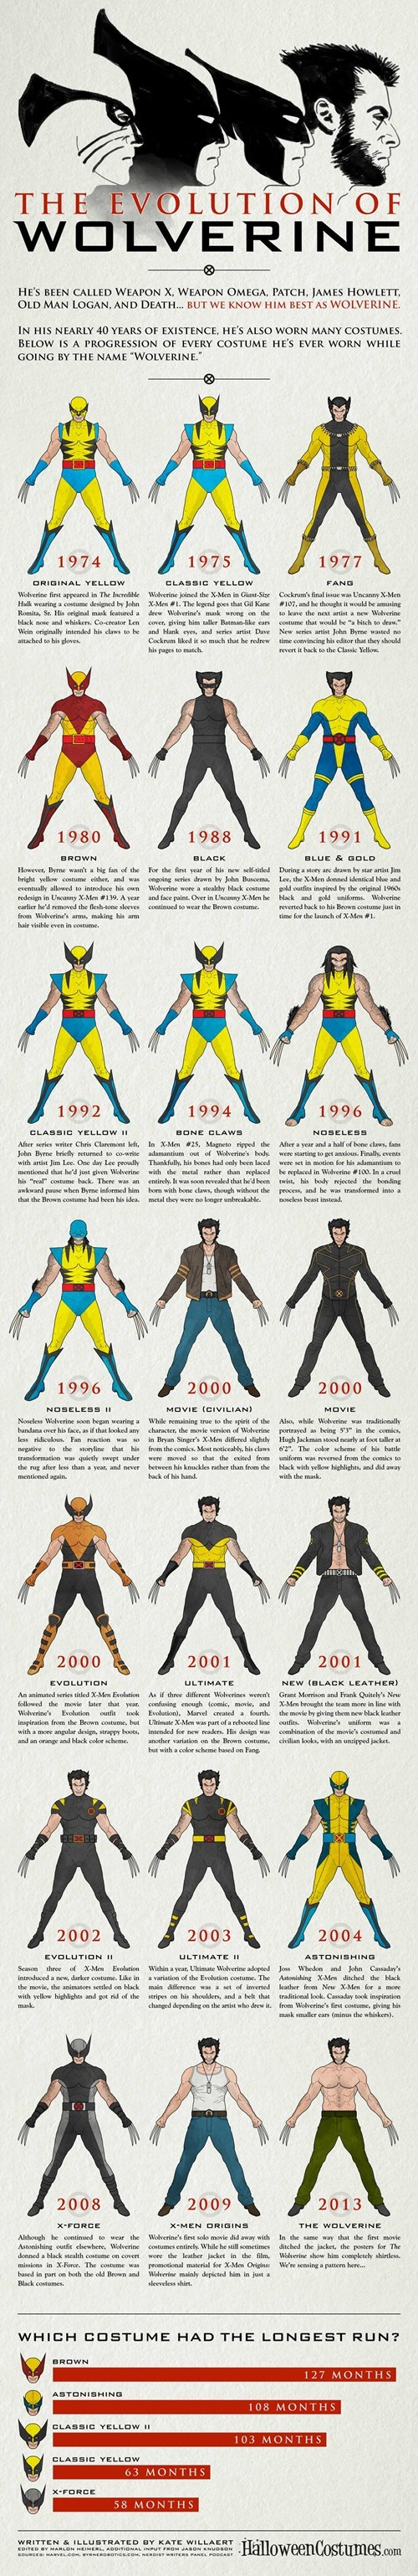 superheroes-wolverine-marvel-costume-history-infographic